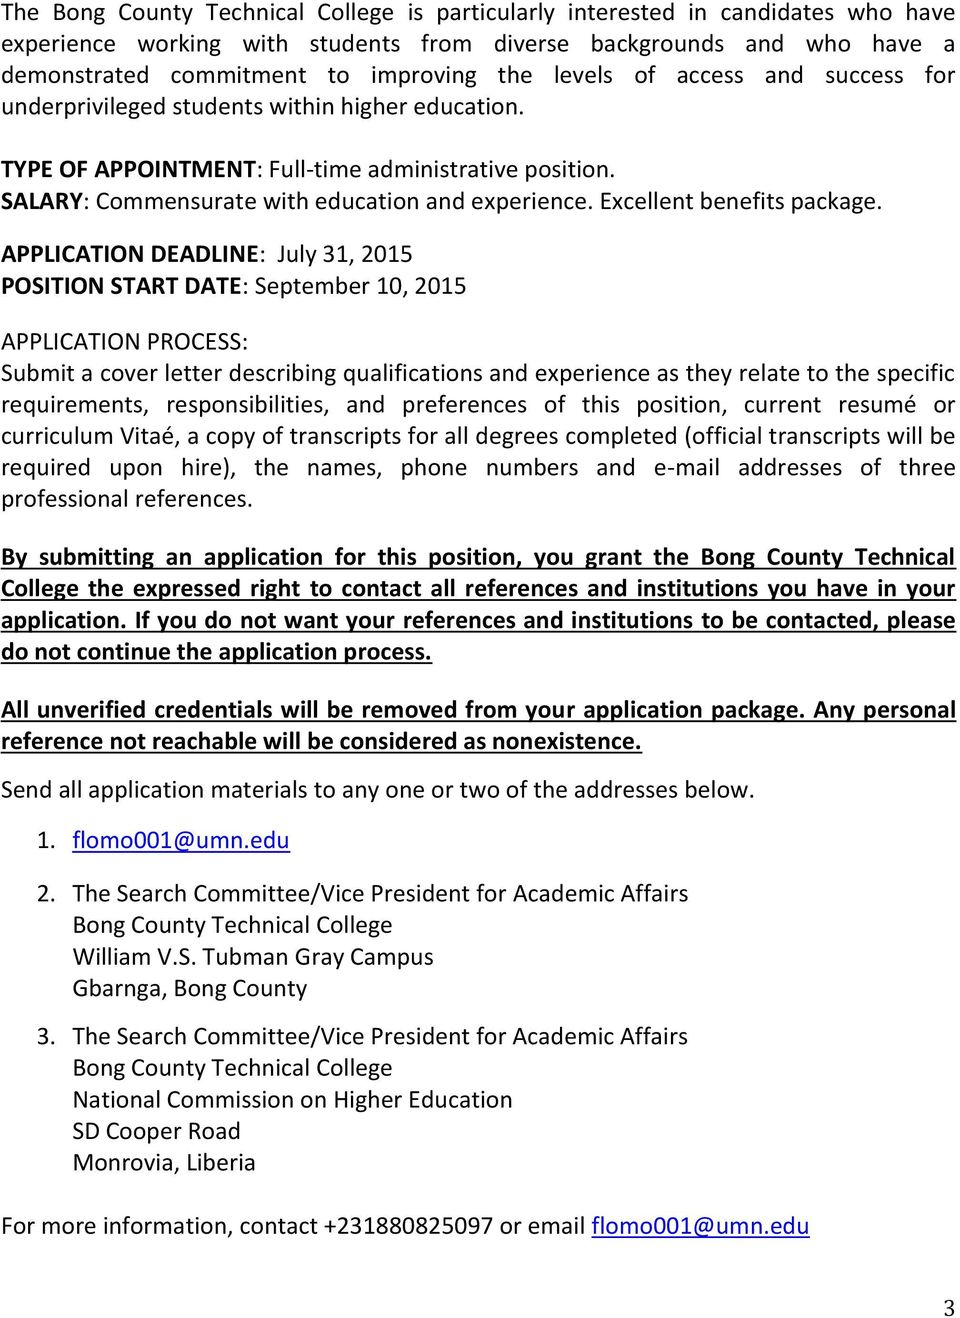 APPLICATION DEADLINE: July 31, 2015 POSITION START DATE: September 10, 2015 APPLICATION PROCESS: Submit a cover letter describing qualifications and experience as they relate to the specific